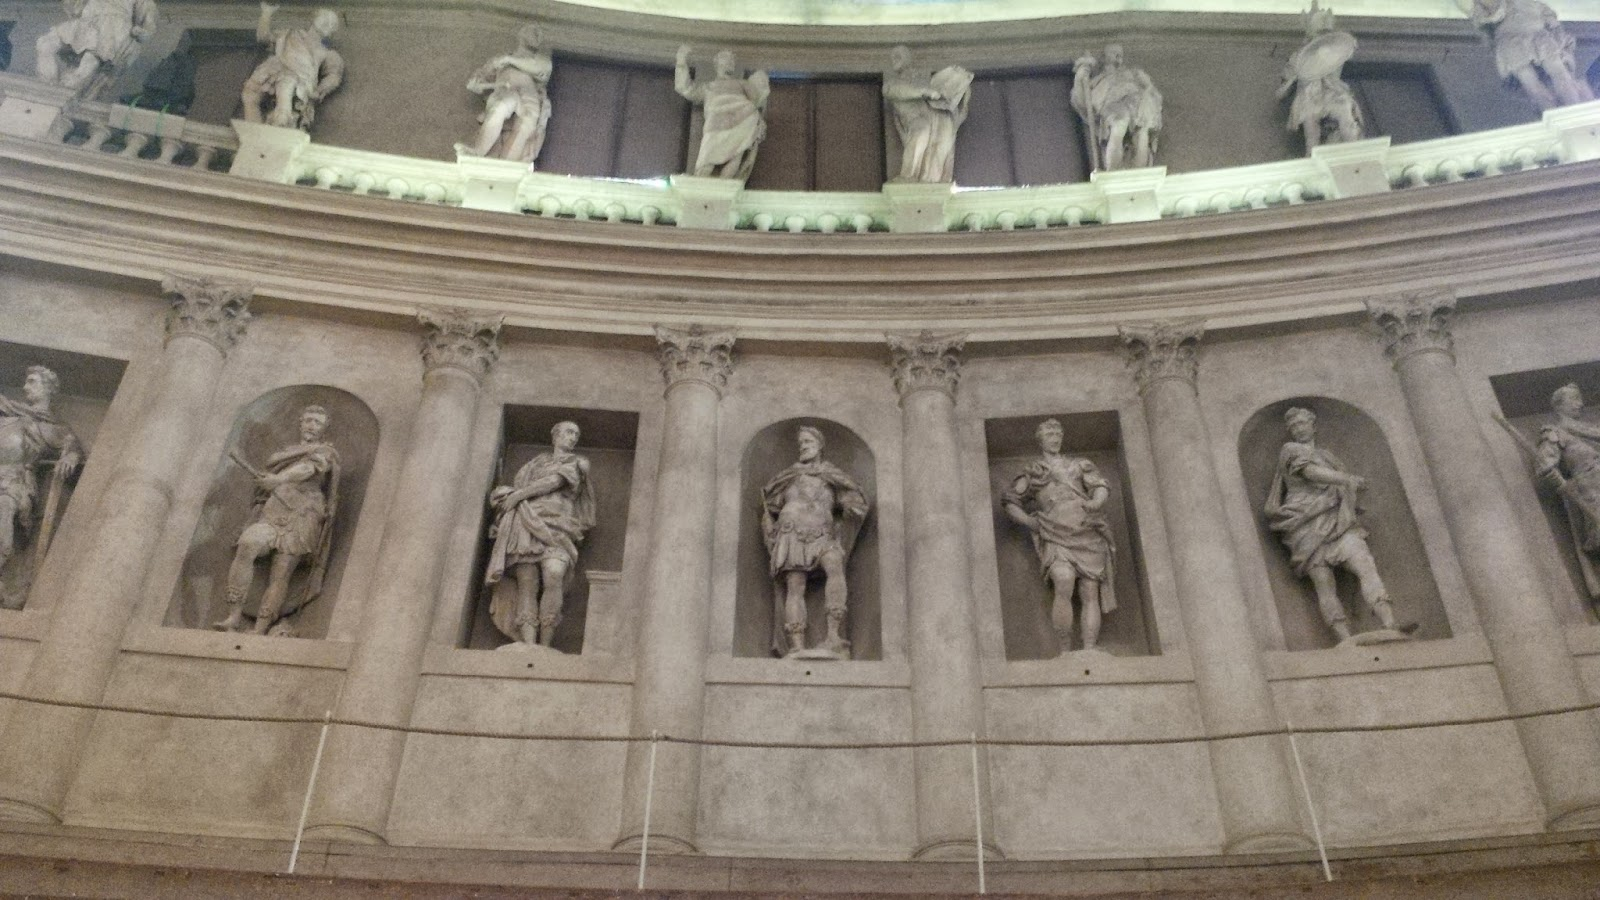 The statues depicting the members of the Accademia Olimpica in Teatro Olimpico in Vicenza